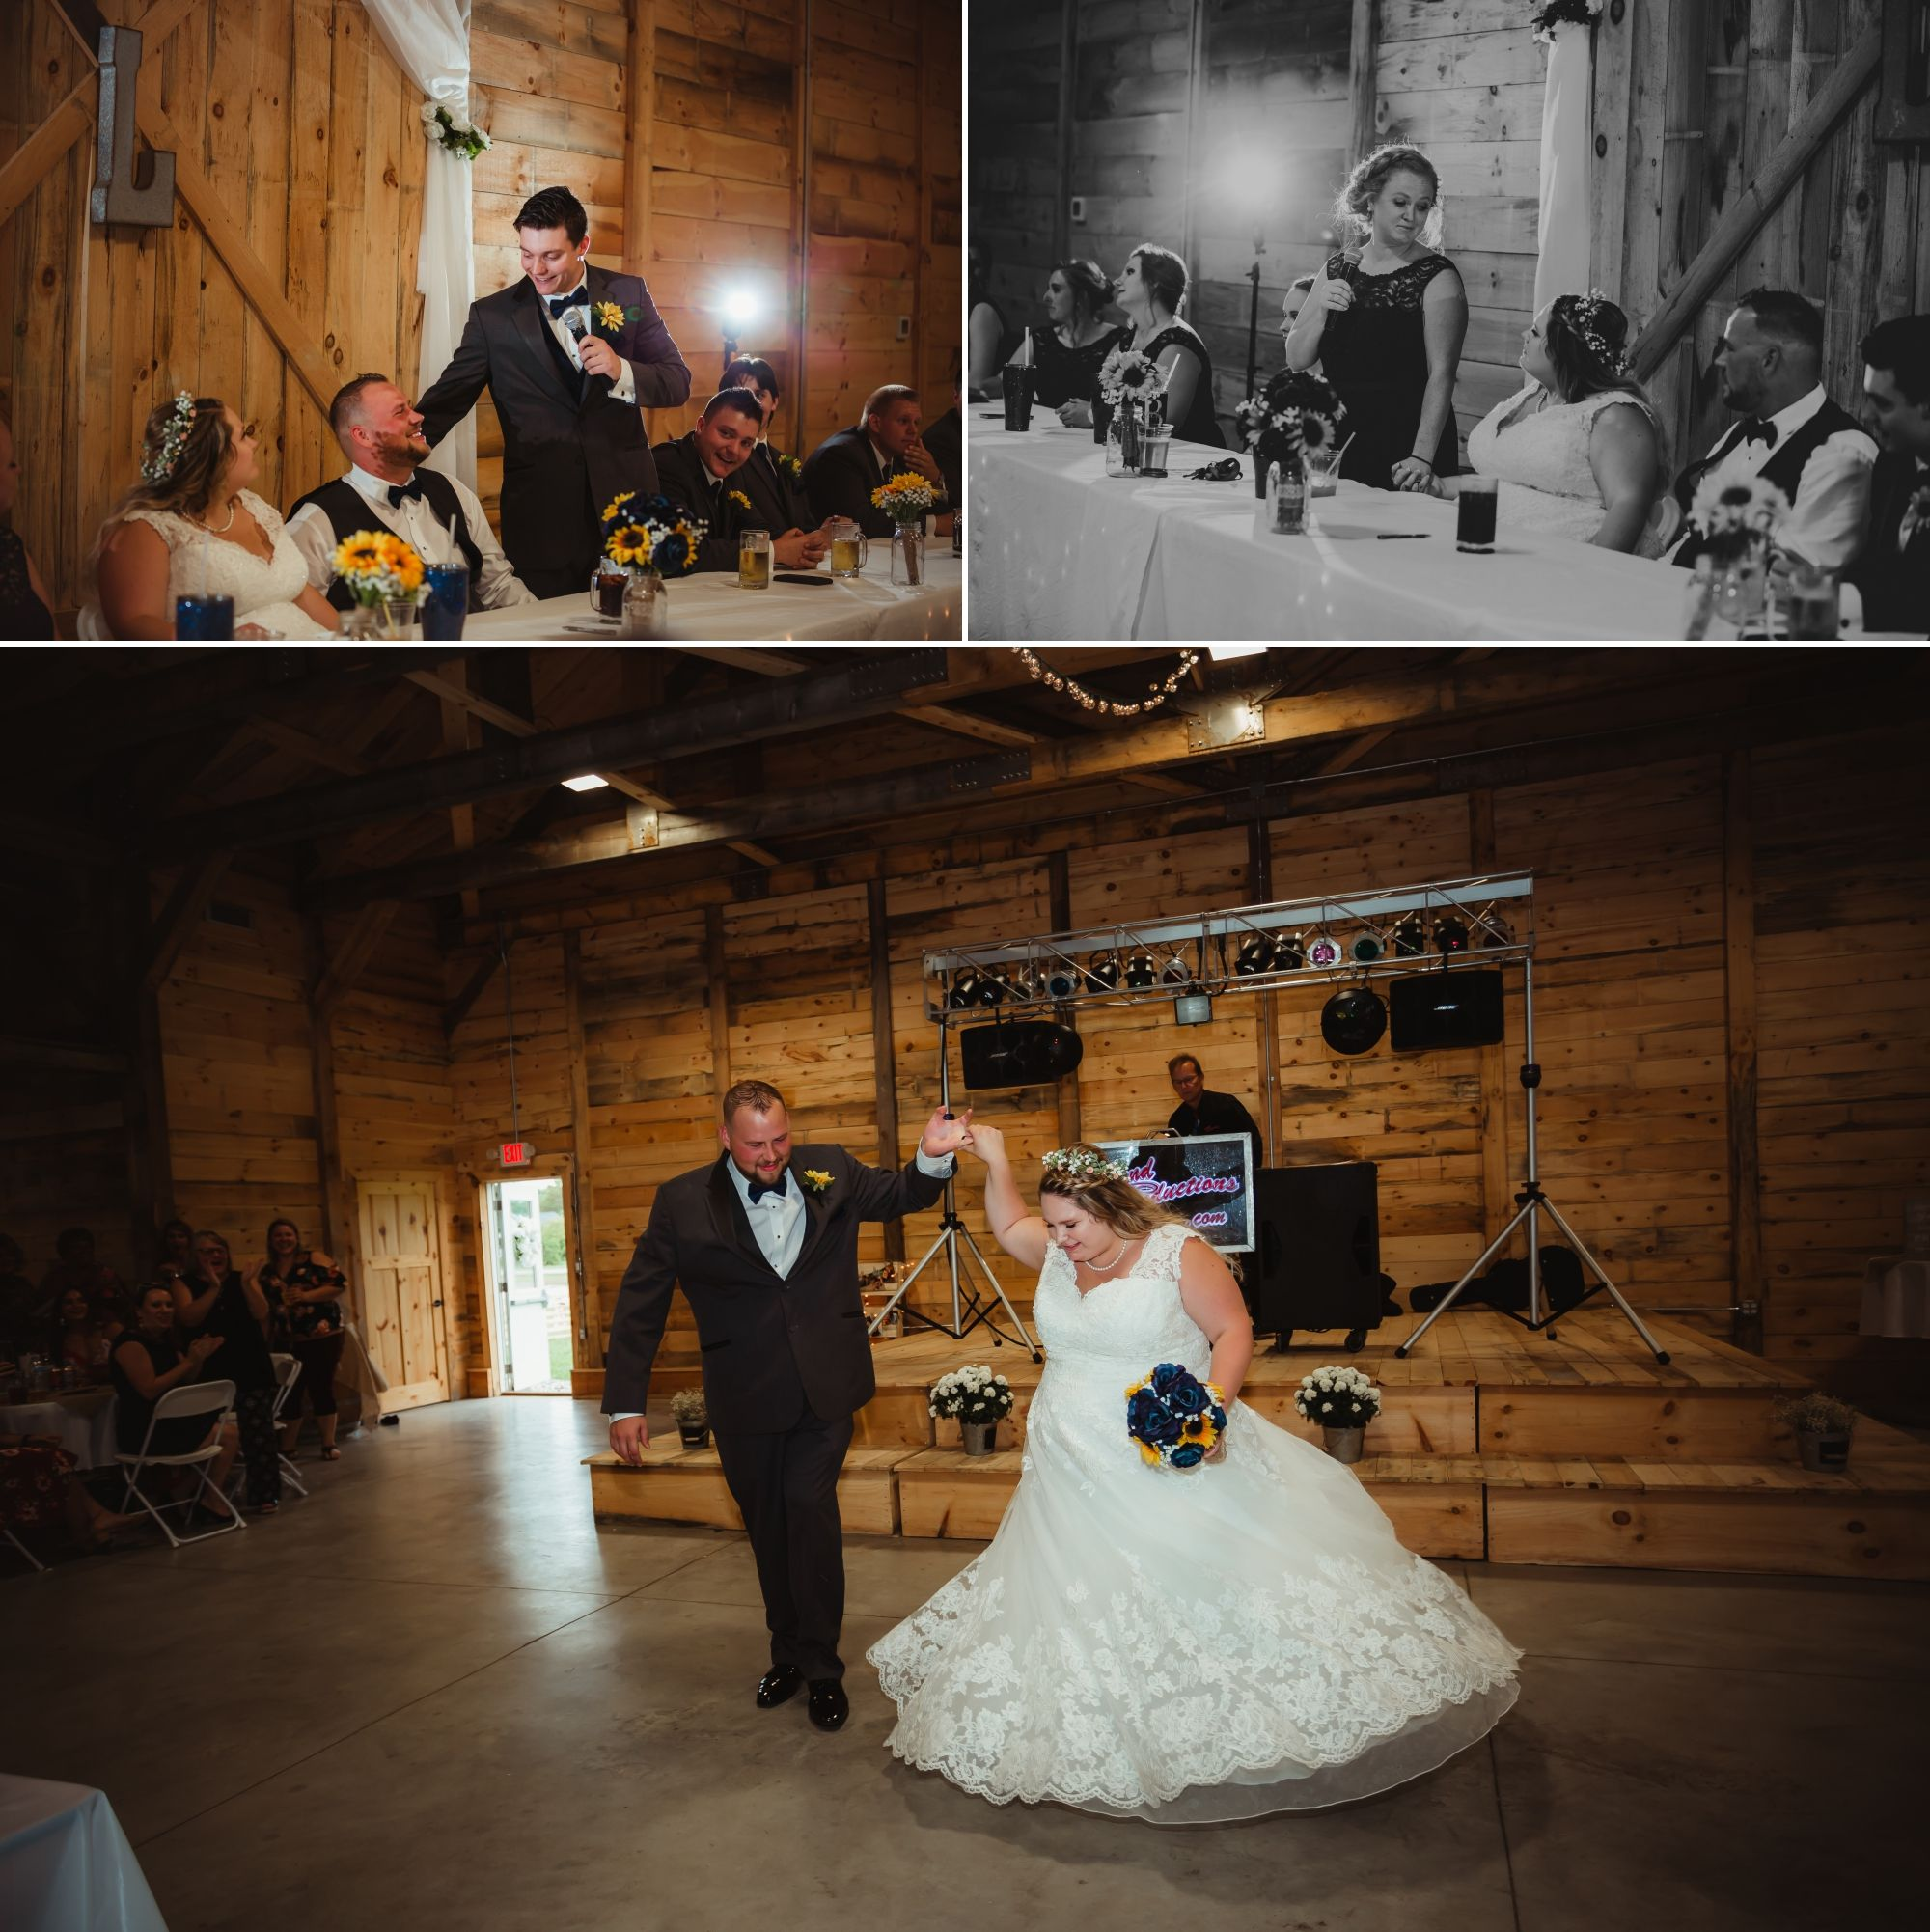 Collage of the bride and groom's reception entrance and toasts.